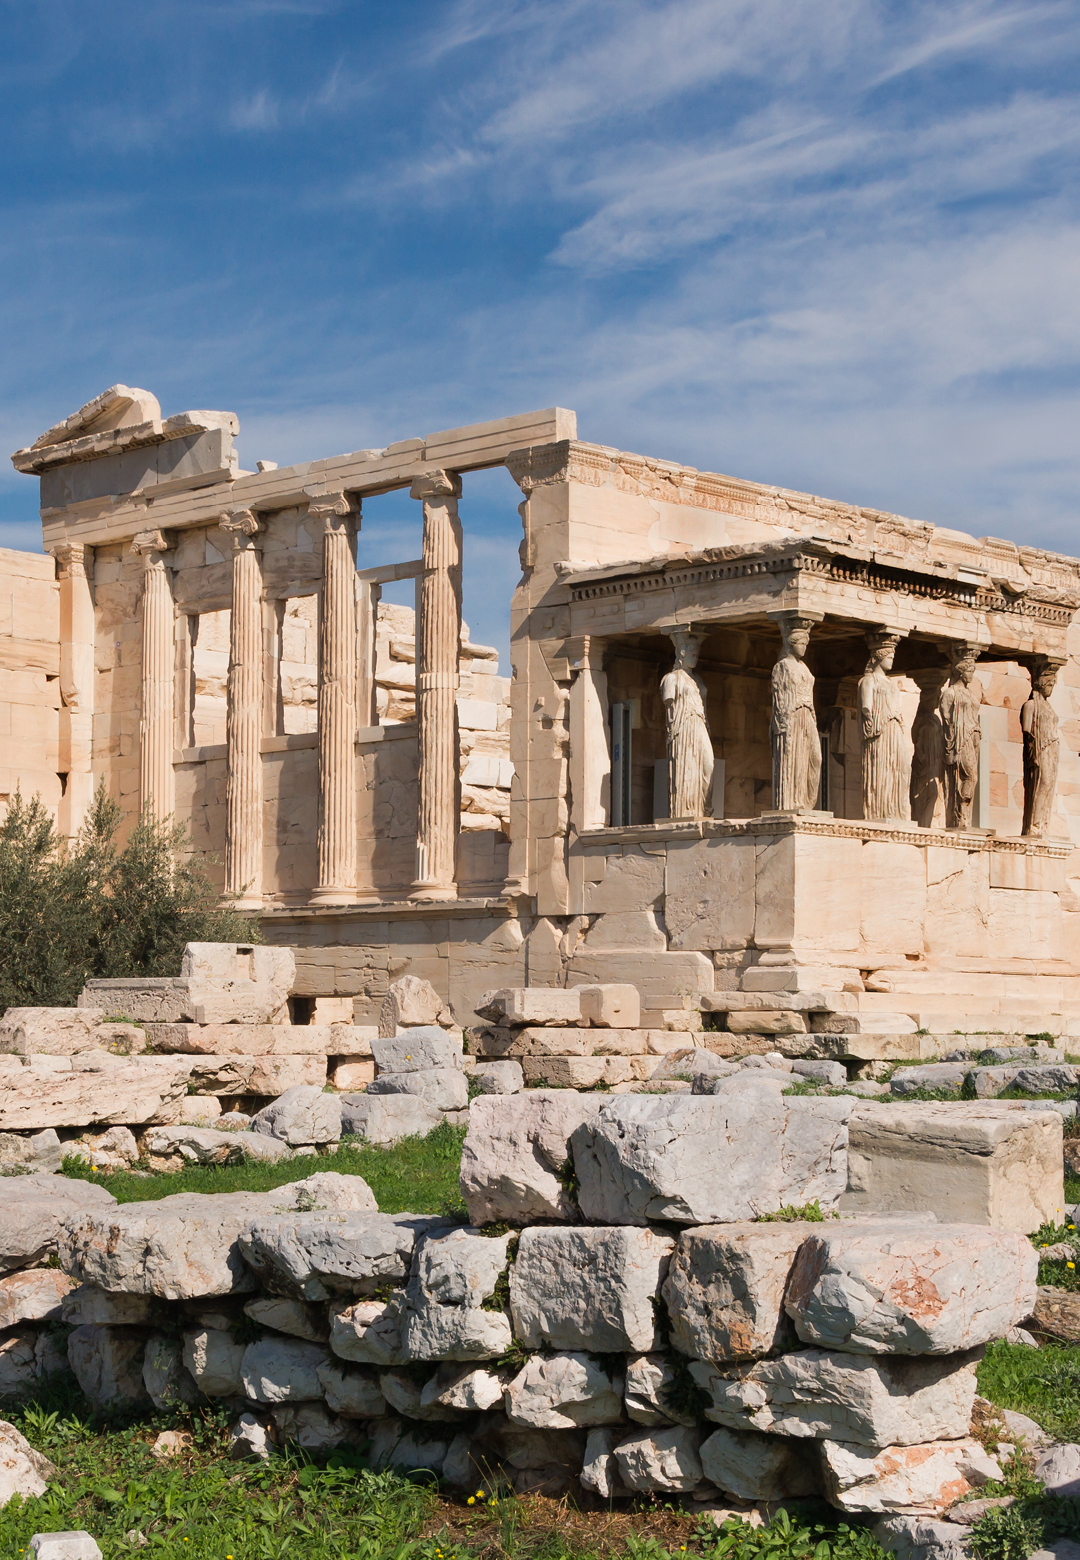 The Erechtheum or the Erechtheion at the Acropolis |Acropolis | Athens | STIRworld